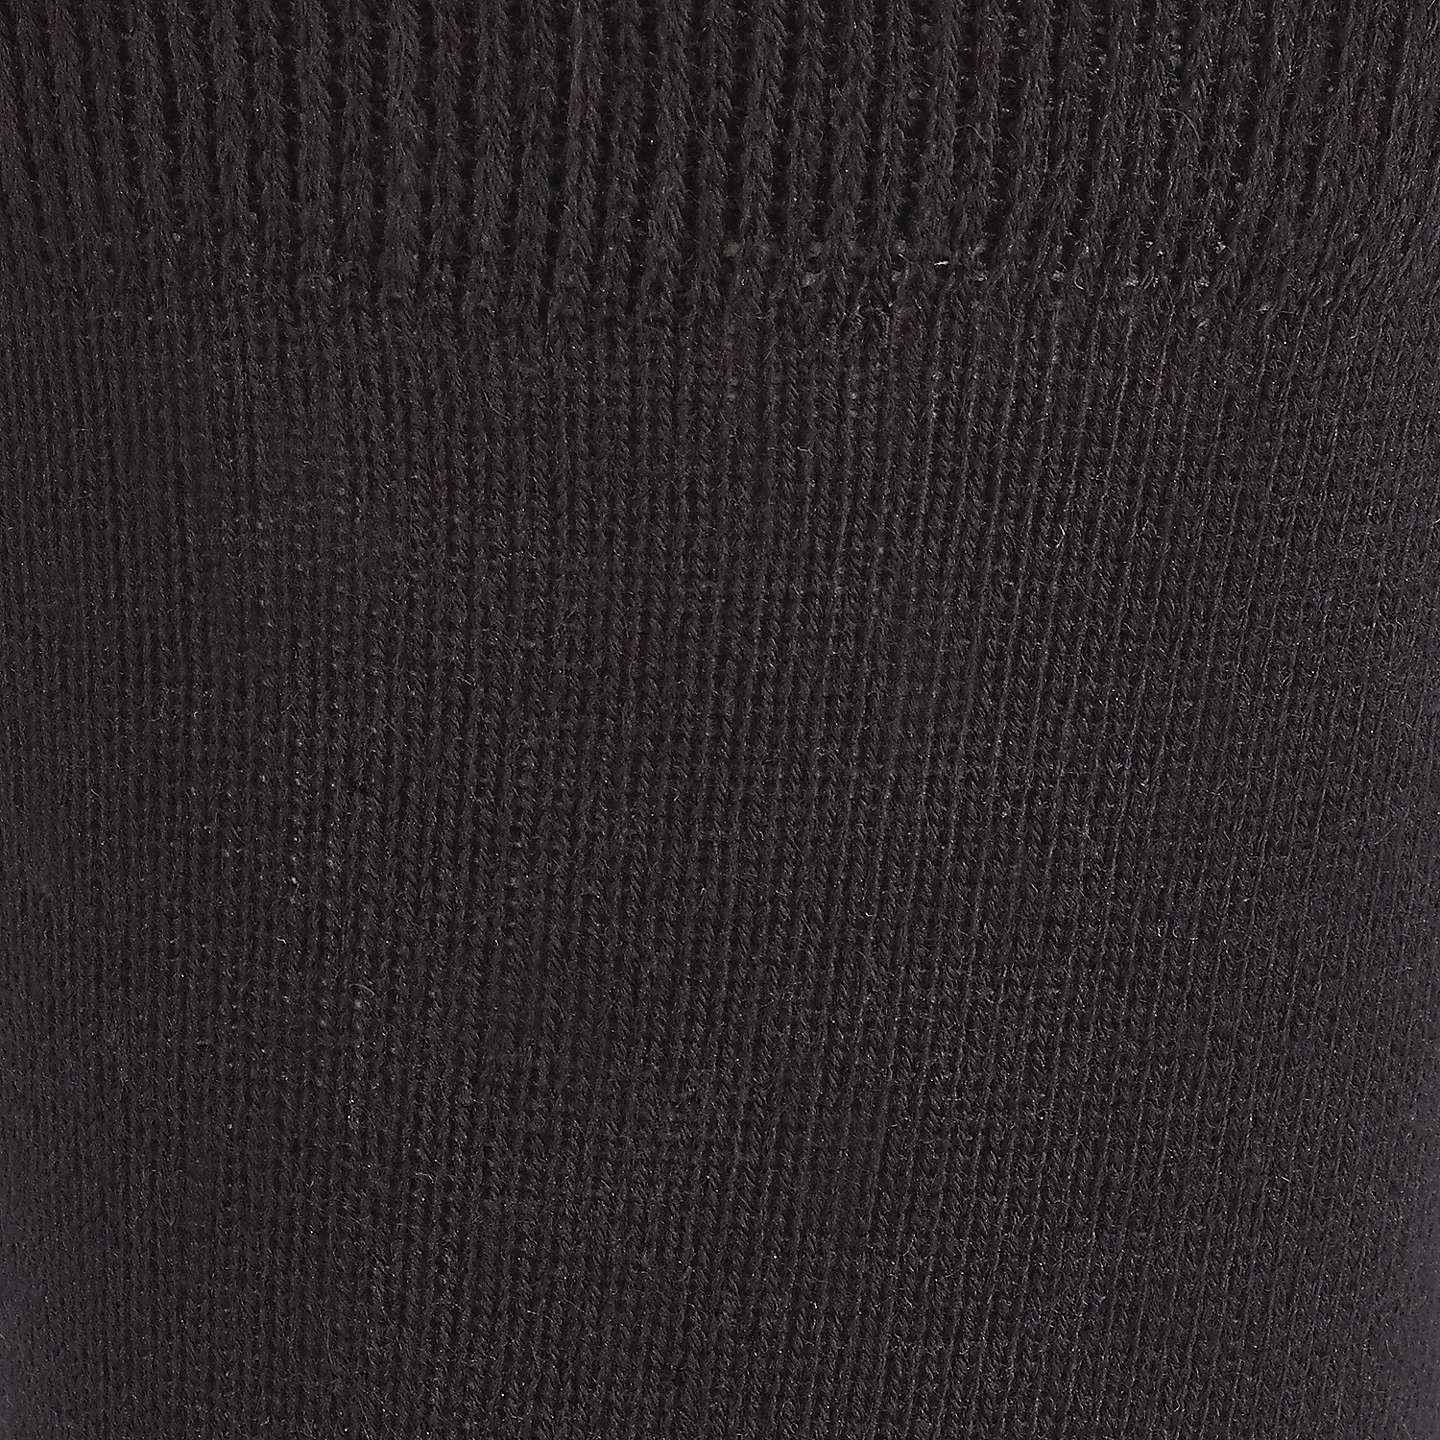 BuyJohn Lewis Cotton Rich Ankle Socks, Pack of 5, Black Online at johnlewis.com